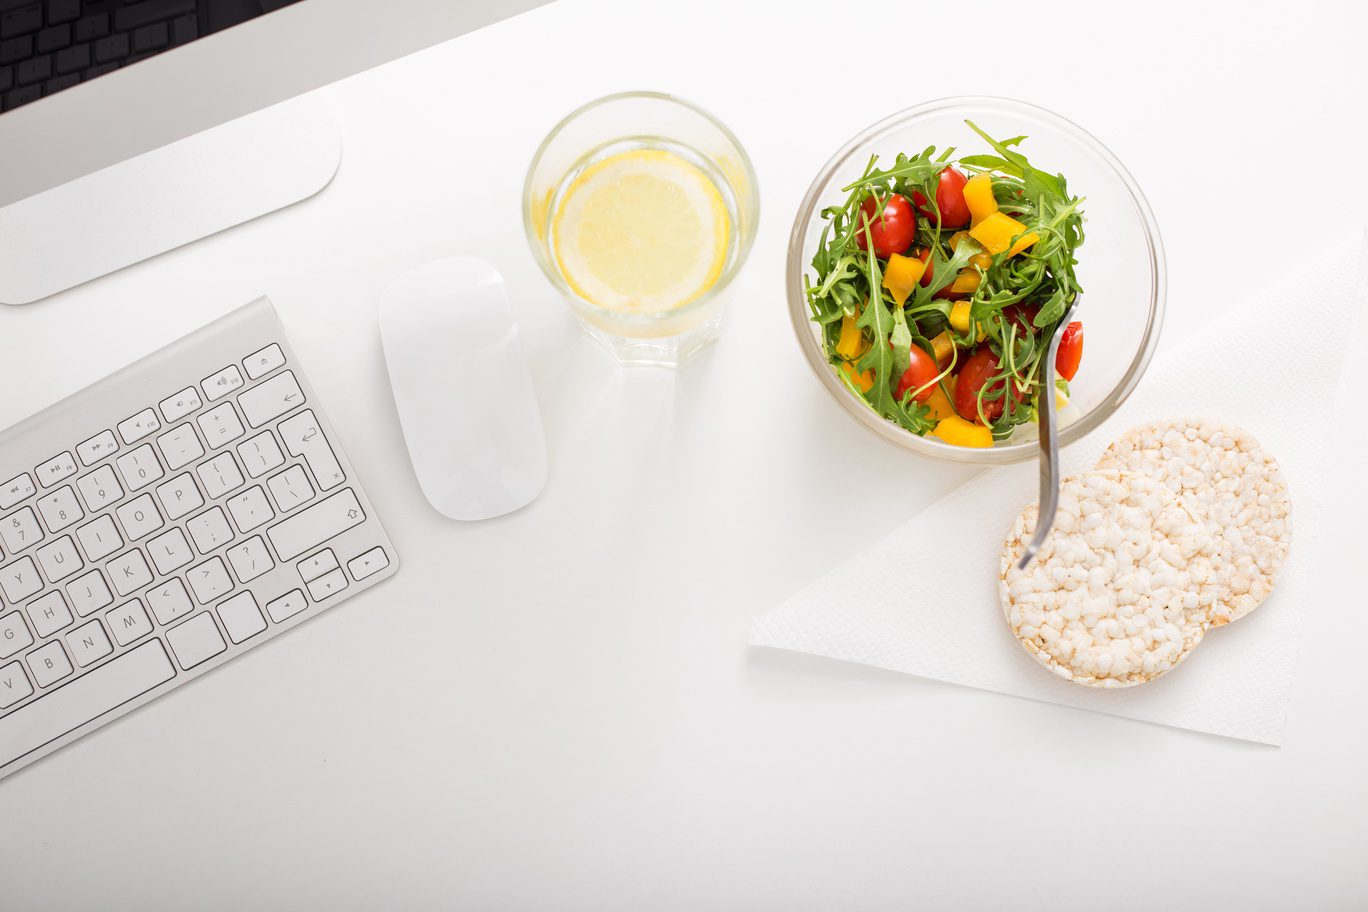 laptop, vegetarian meal and bread on the table